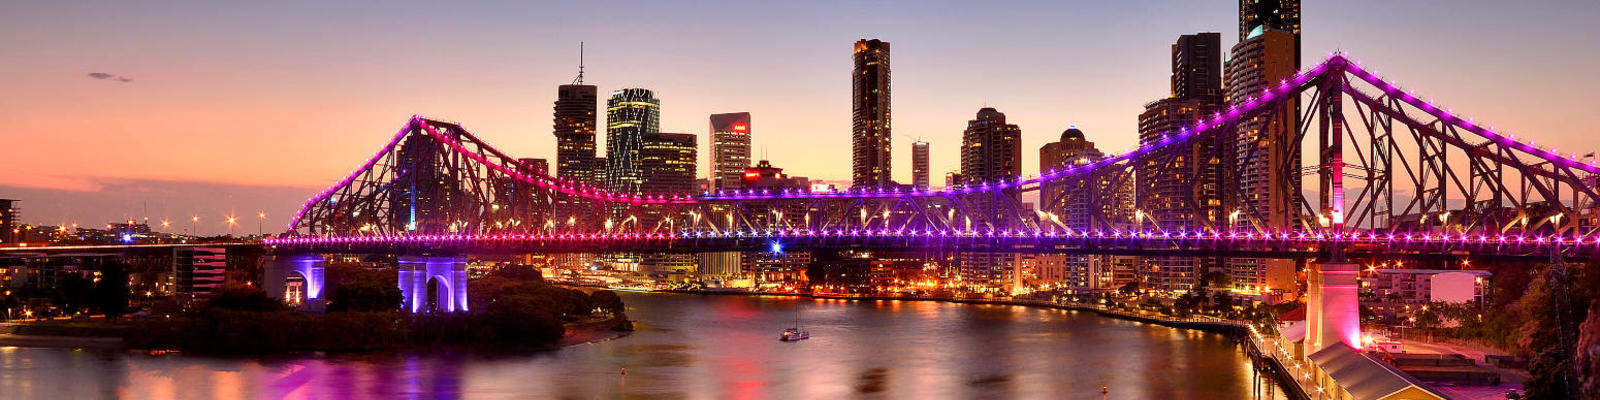 Brisbane's skyline, featuring the Story Bridge, at twilight.